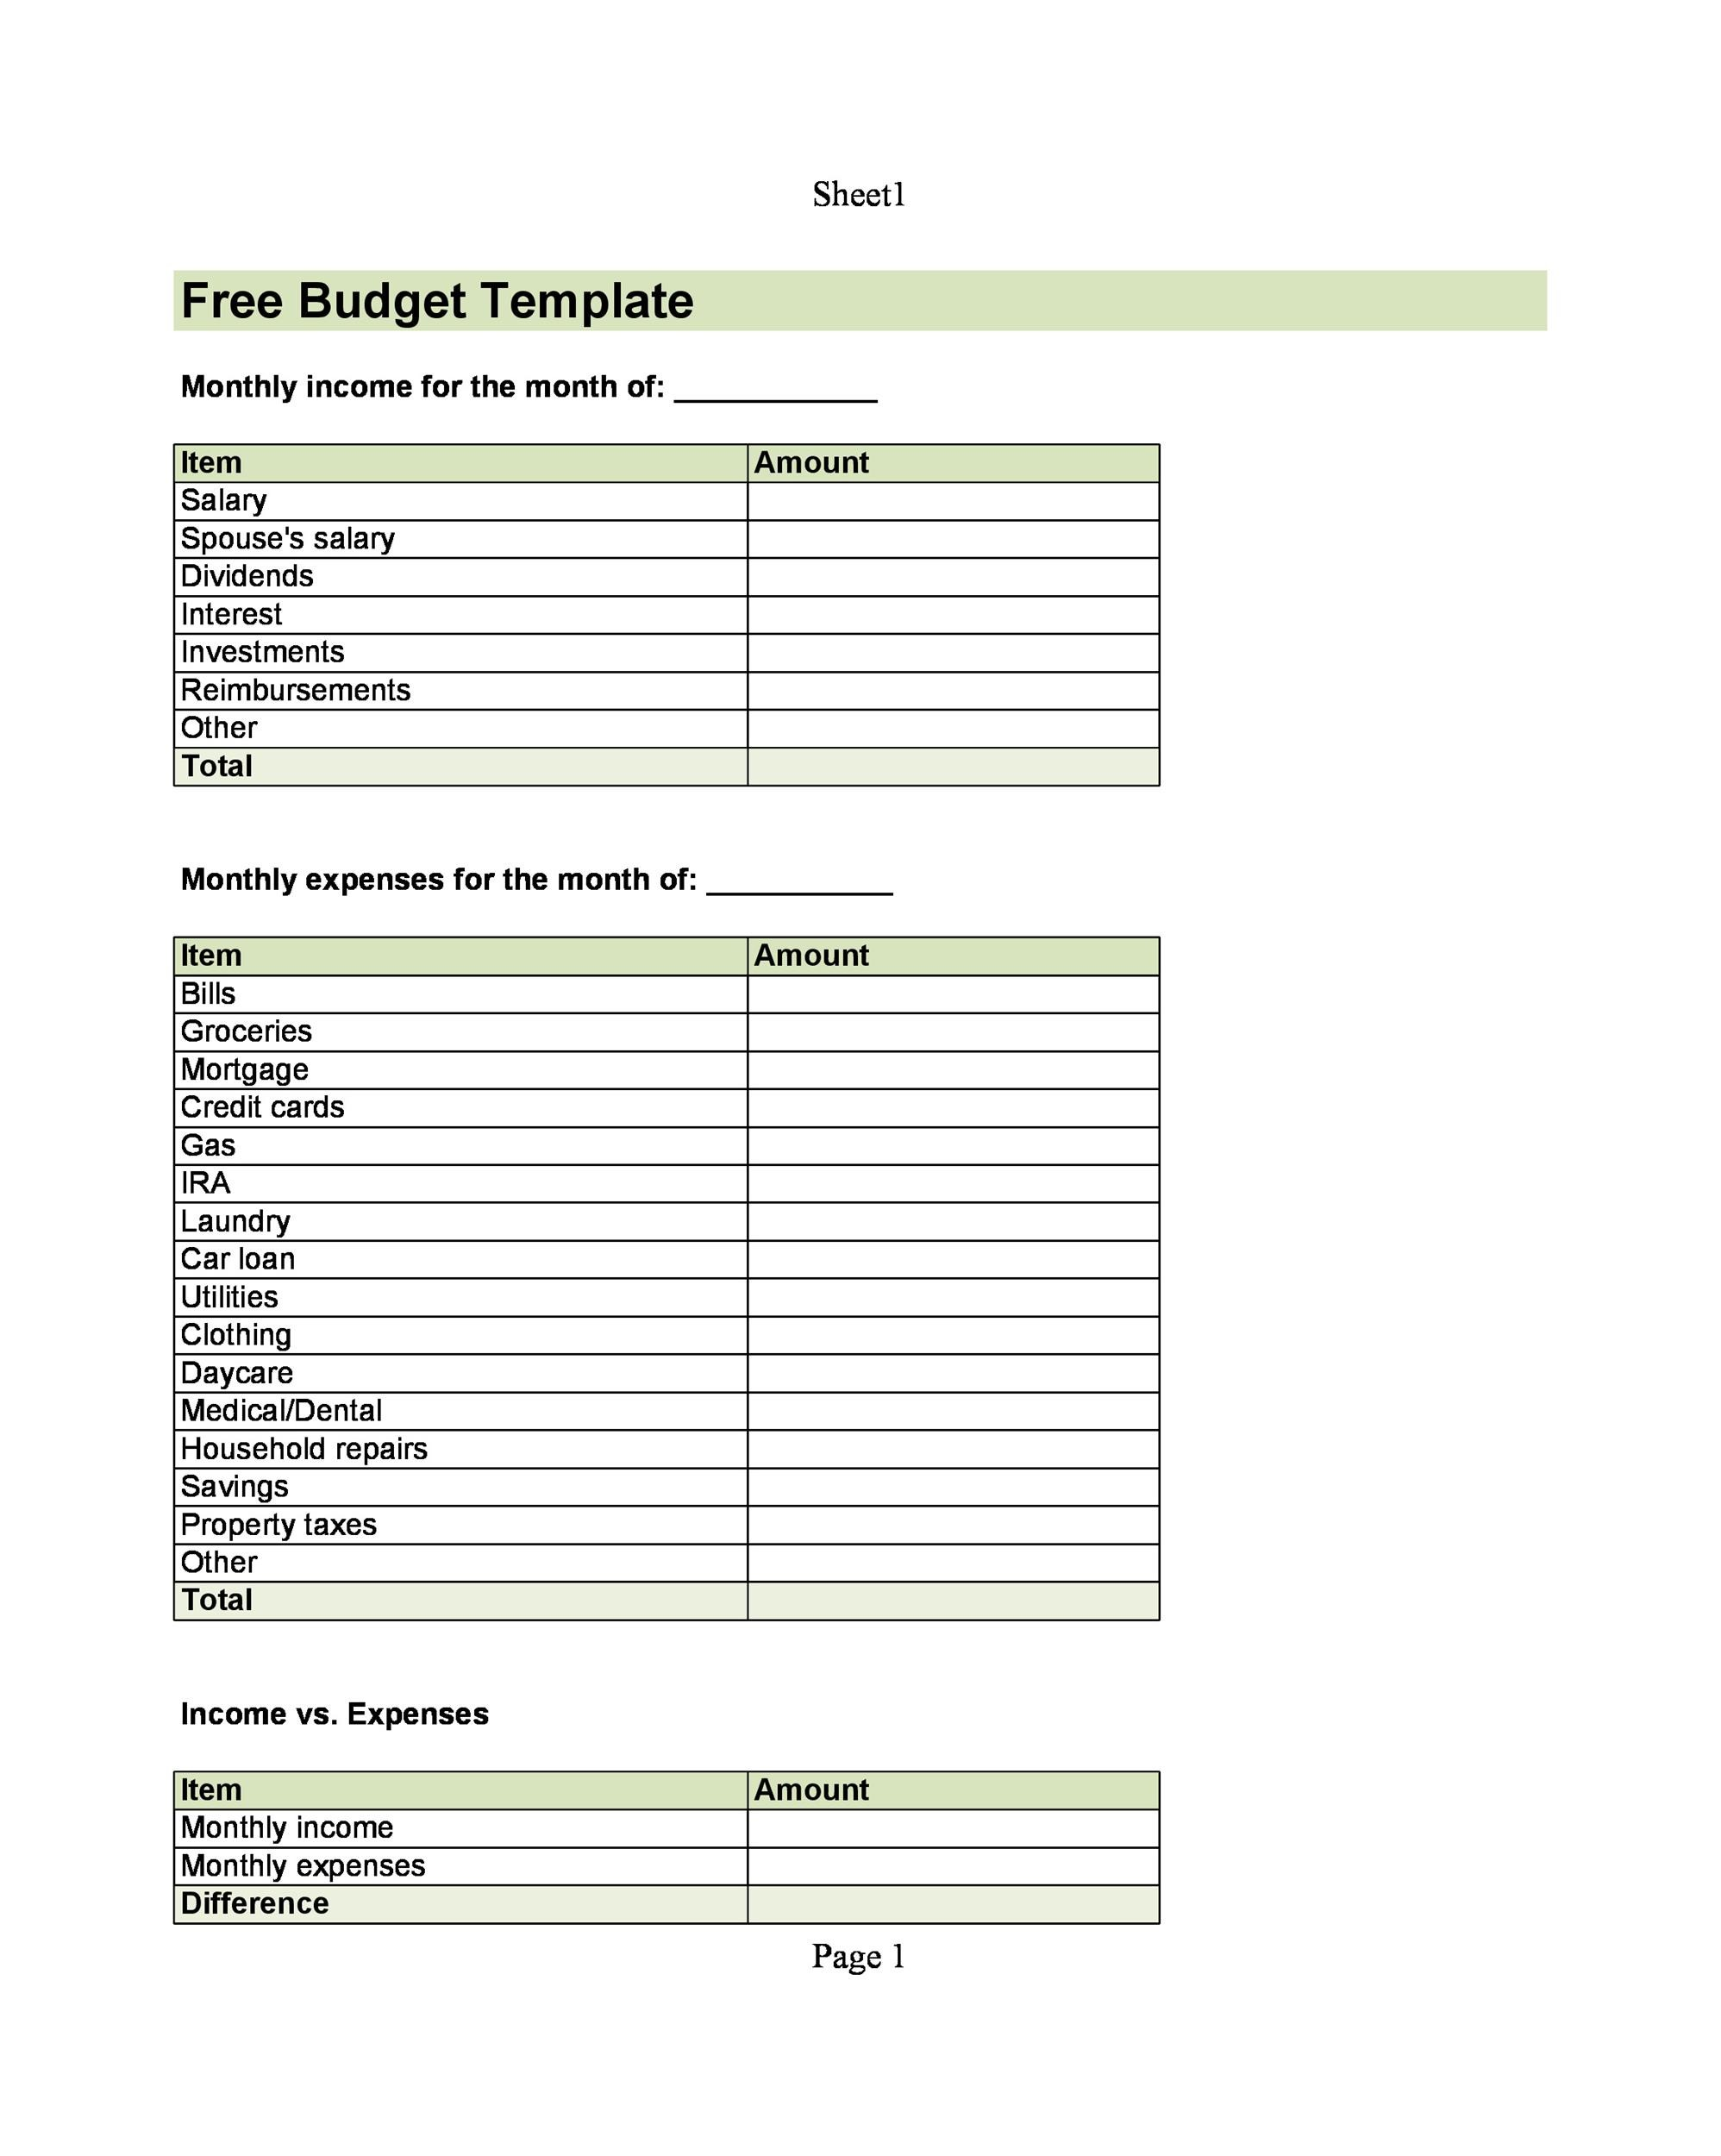 Free Budget Template 02